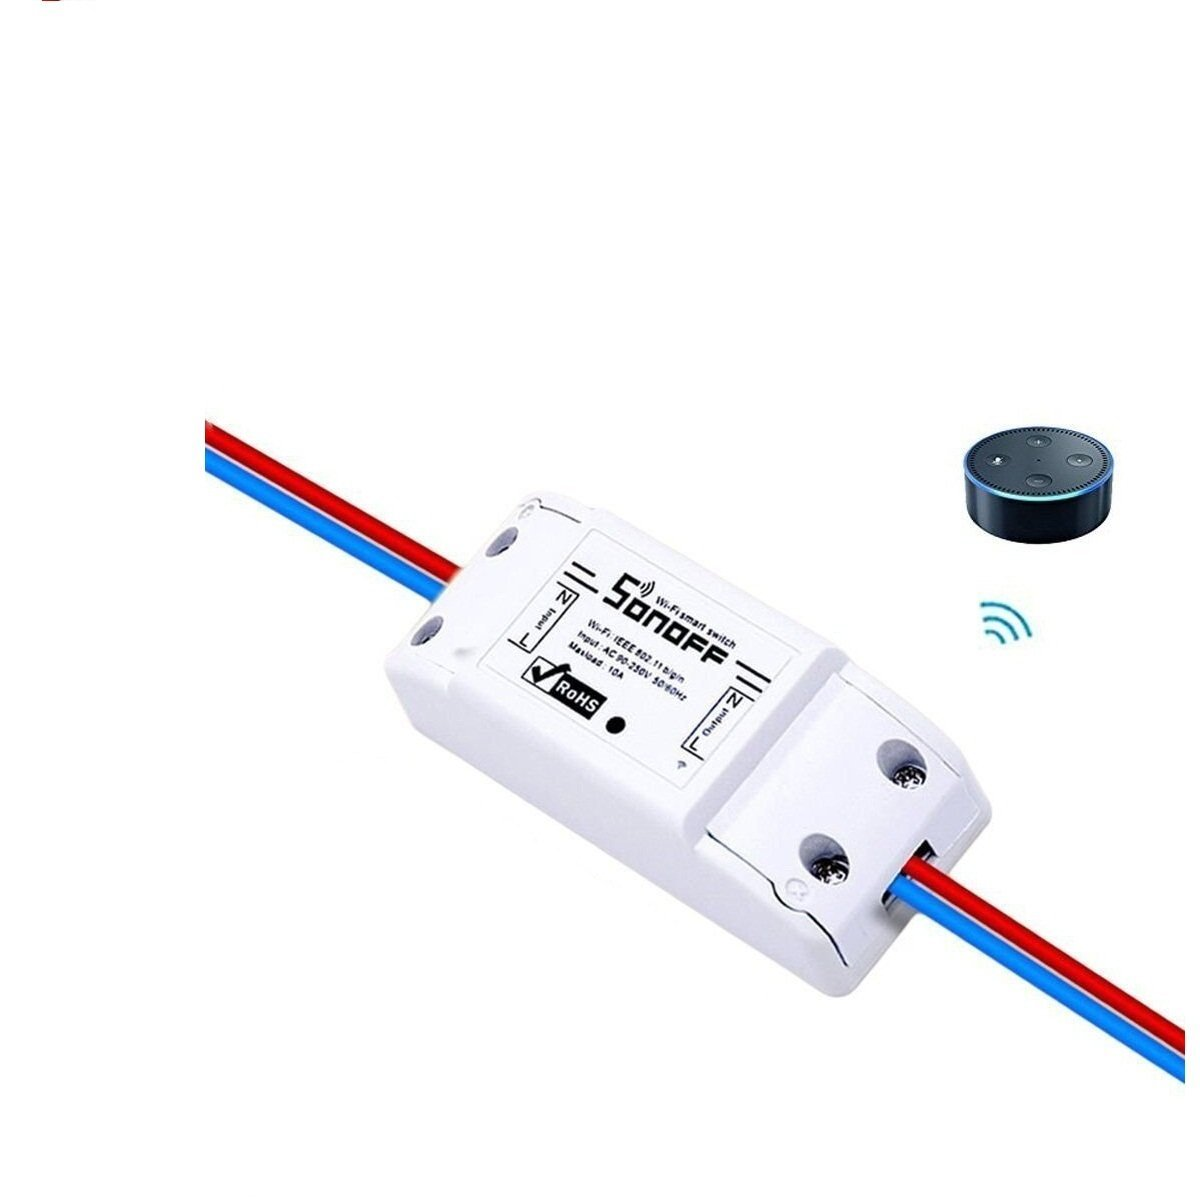 OWIKAR Smart WIFI Switch Wireless Remote Control Timer ABS Module Universal Home Intelligent Center Socket Compatible with Alexa DIY Your Smart Home via iphone Android APP